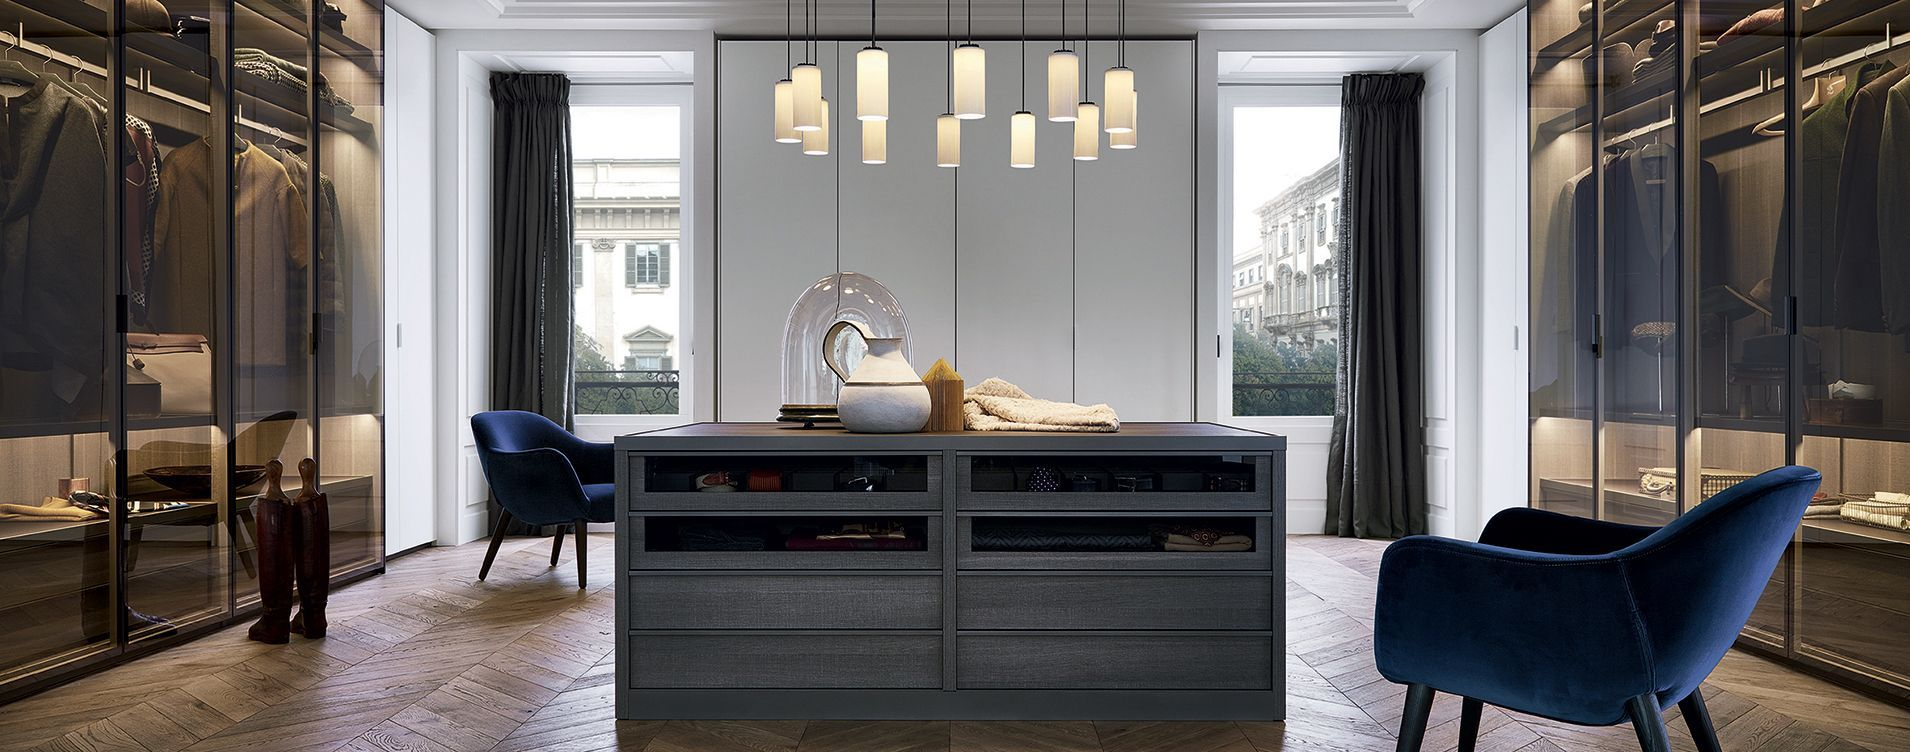 silvera meubles design et contemporain luminaire mobilier de bureau pour professionnels. Black Bedroom Furniture Sets. Home Design Ideas